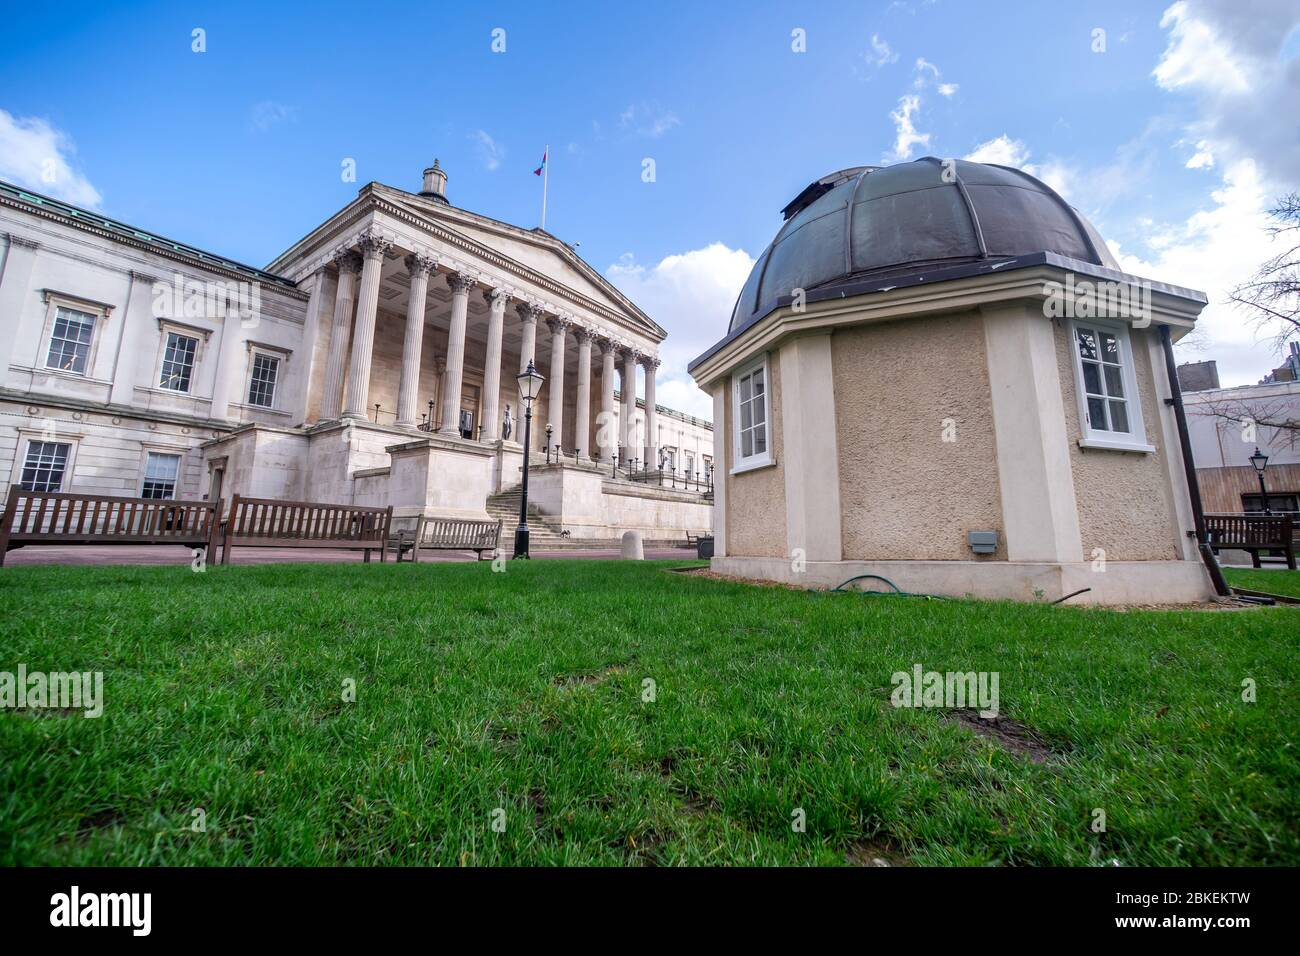 UCL University College London. Wilkins Building, Gower Street, London. Stock Photo